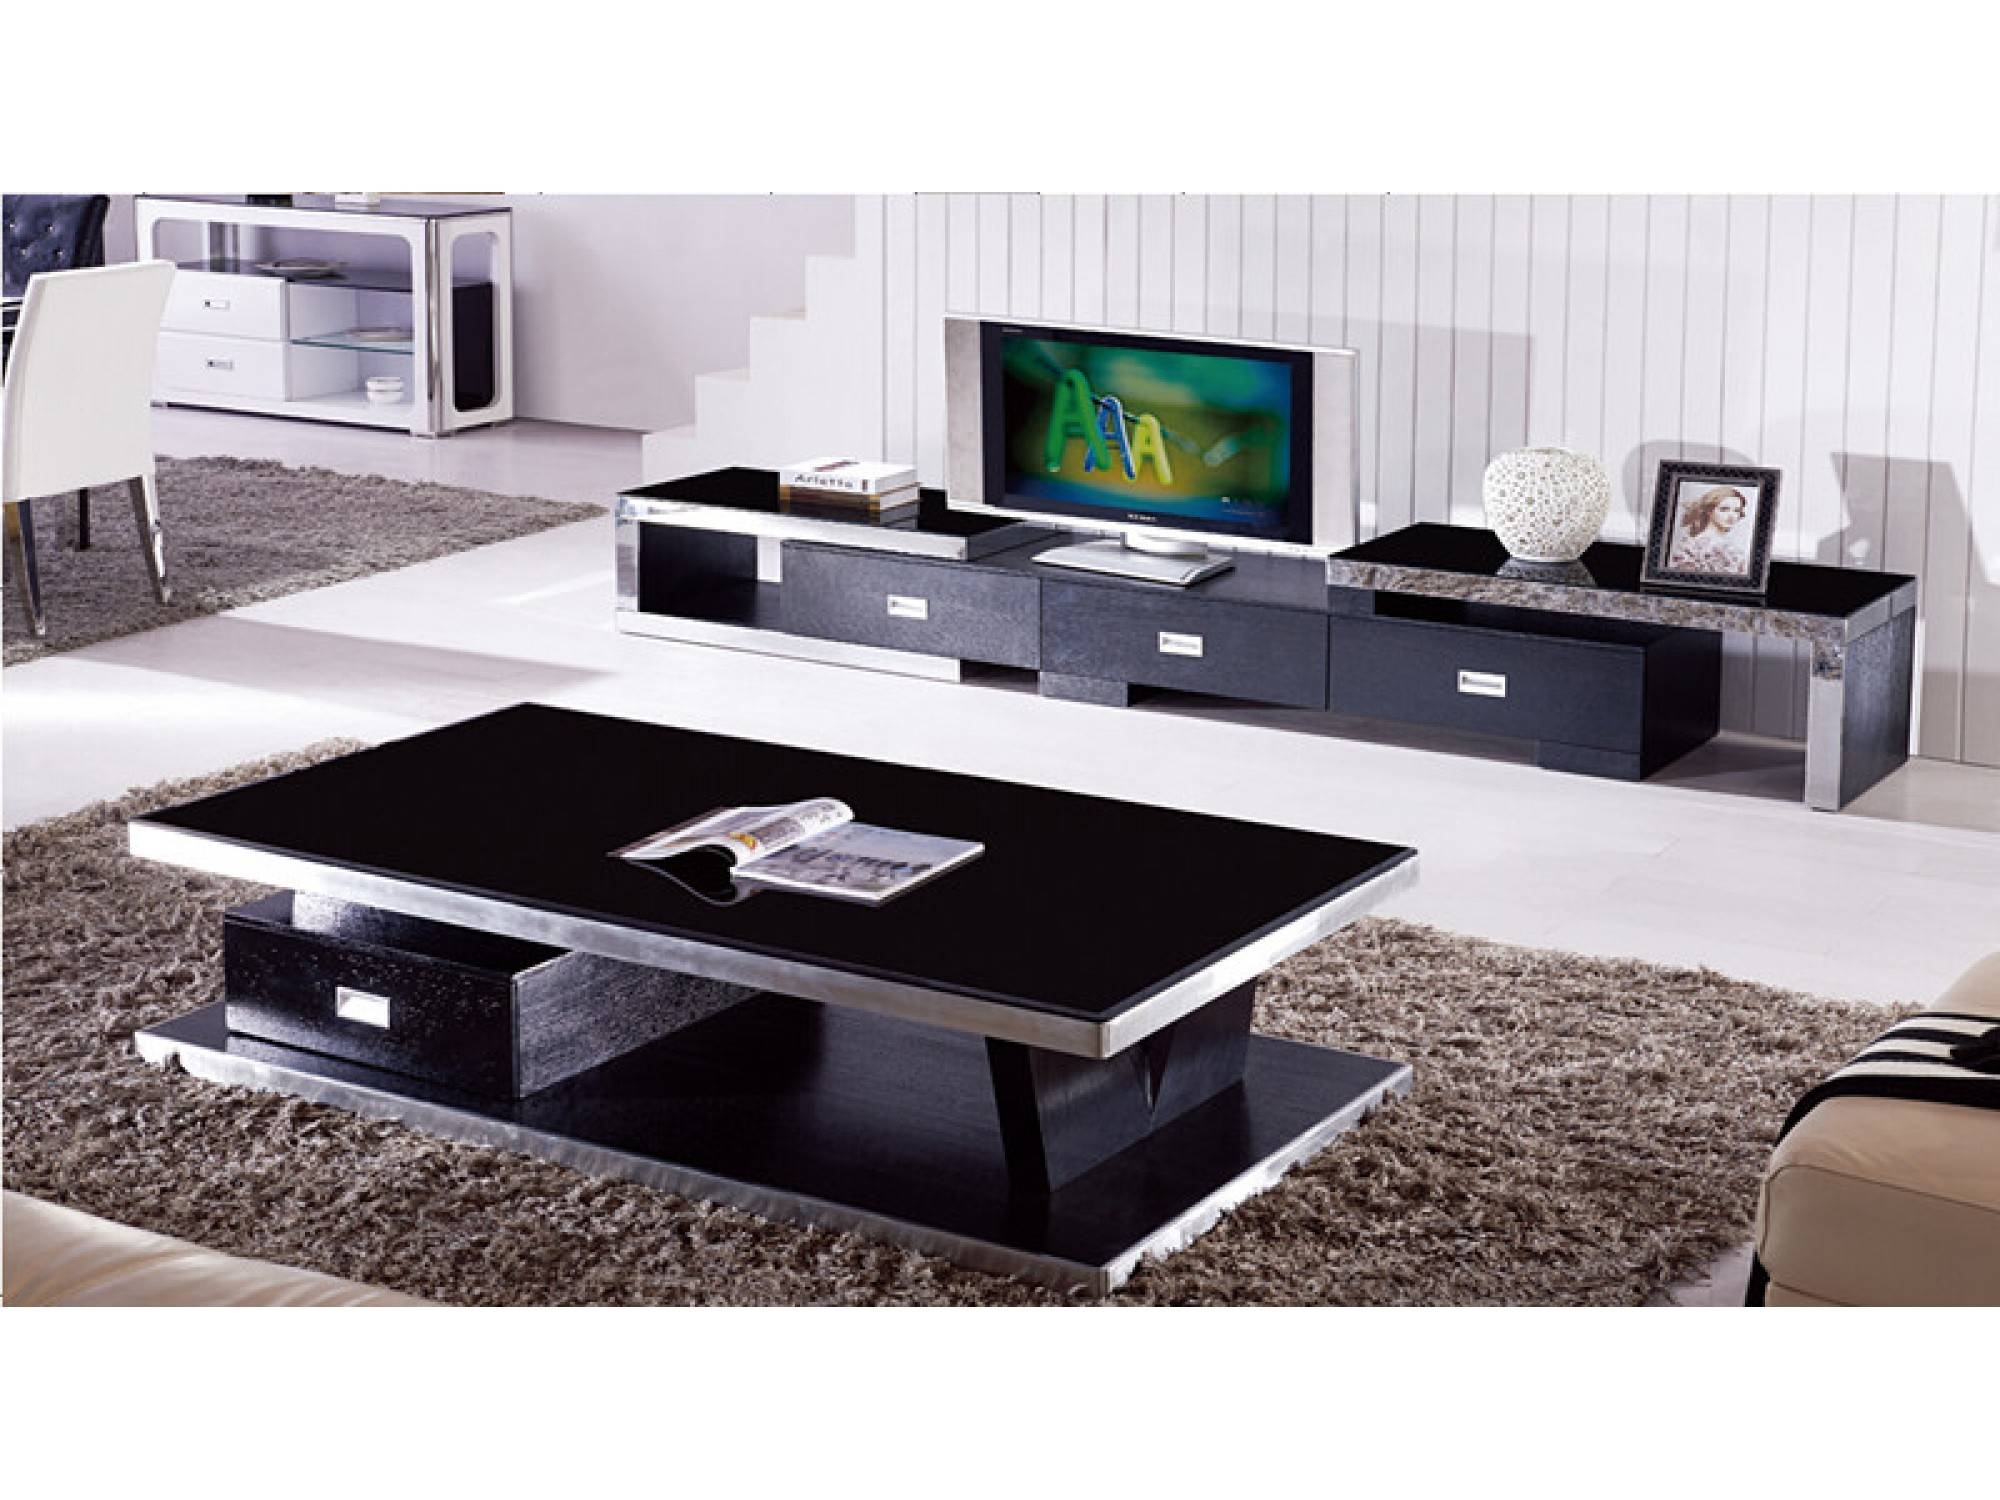 Modern Black Tempered Glass Coffee Table With 1 Drawer - Sunny in Modern Black Glass Coffee Table (Image 10 of 15)